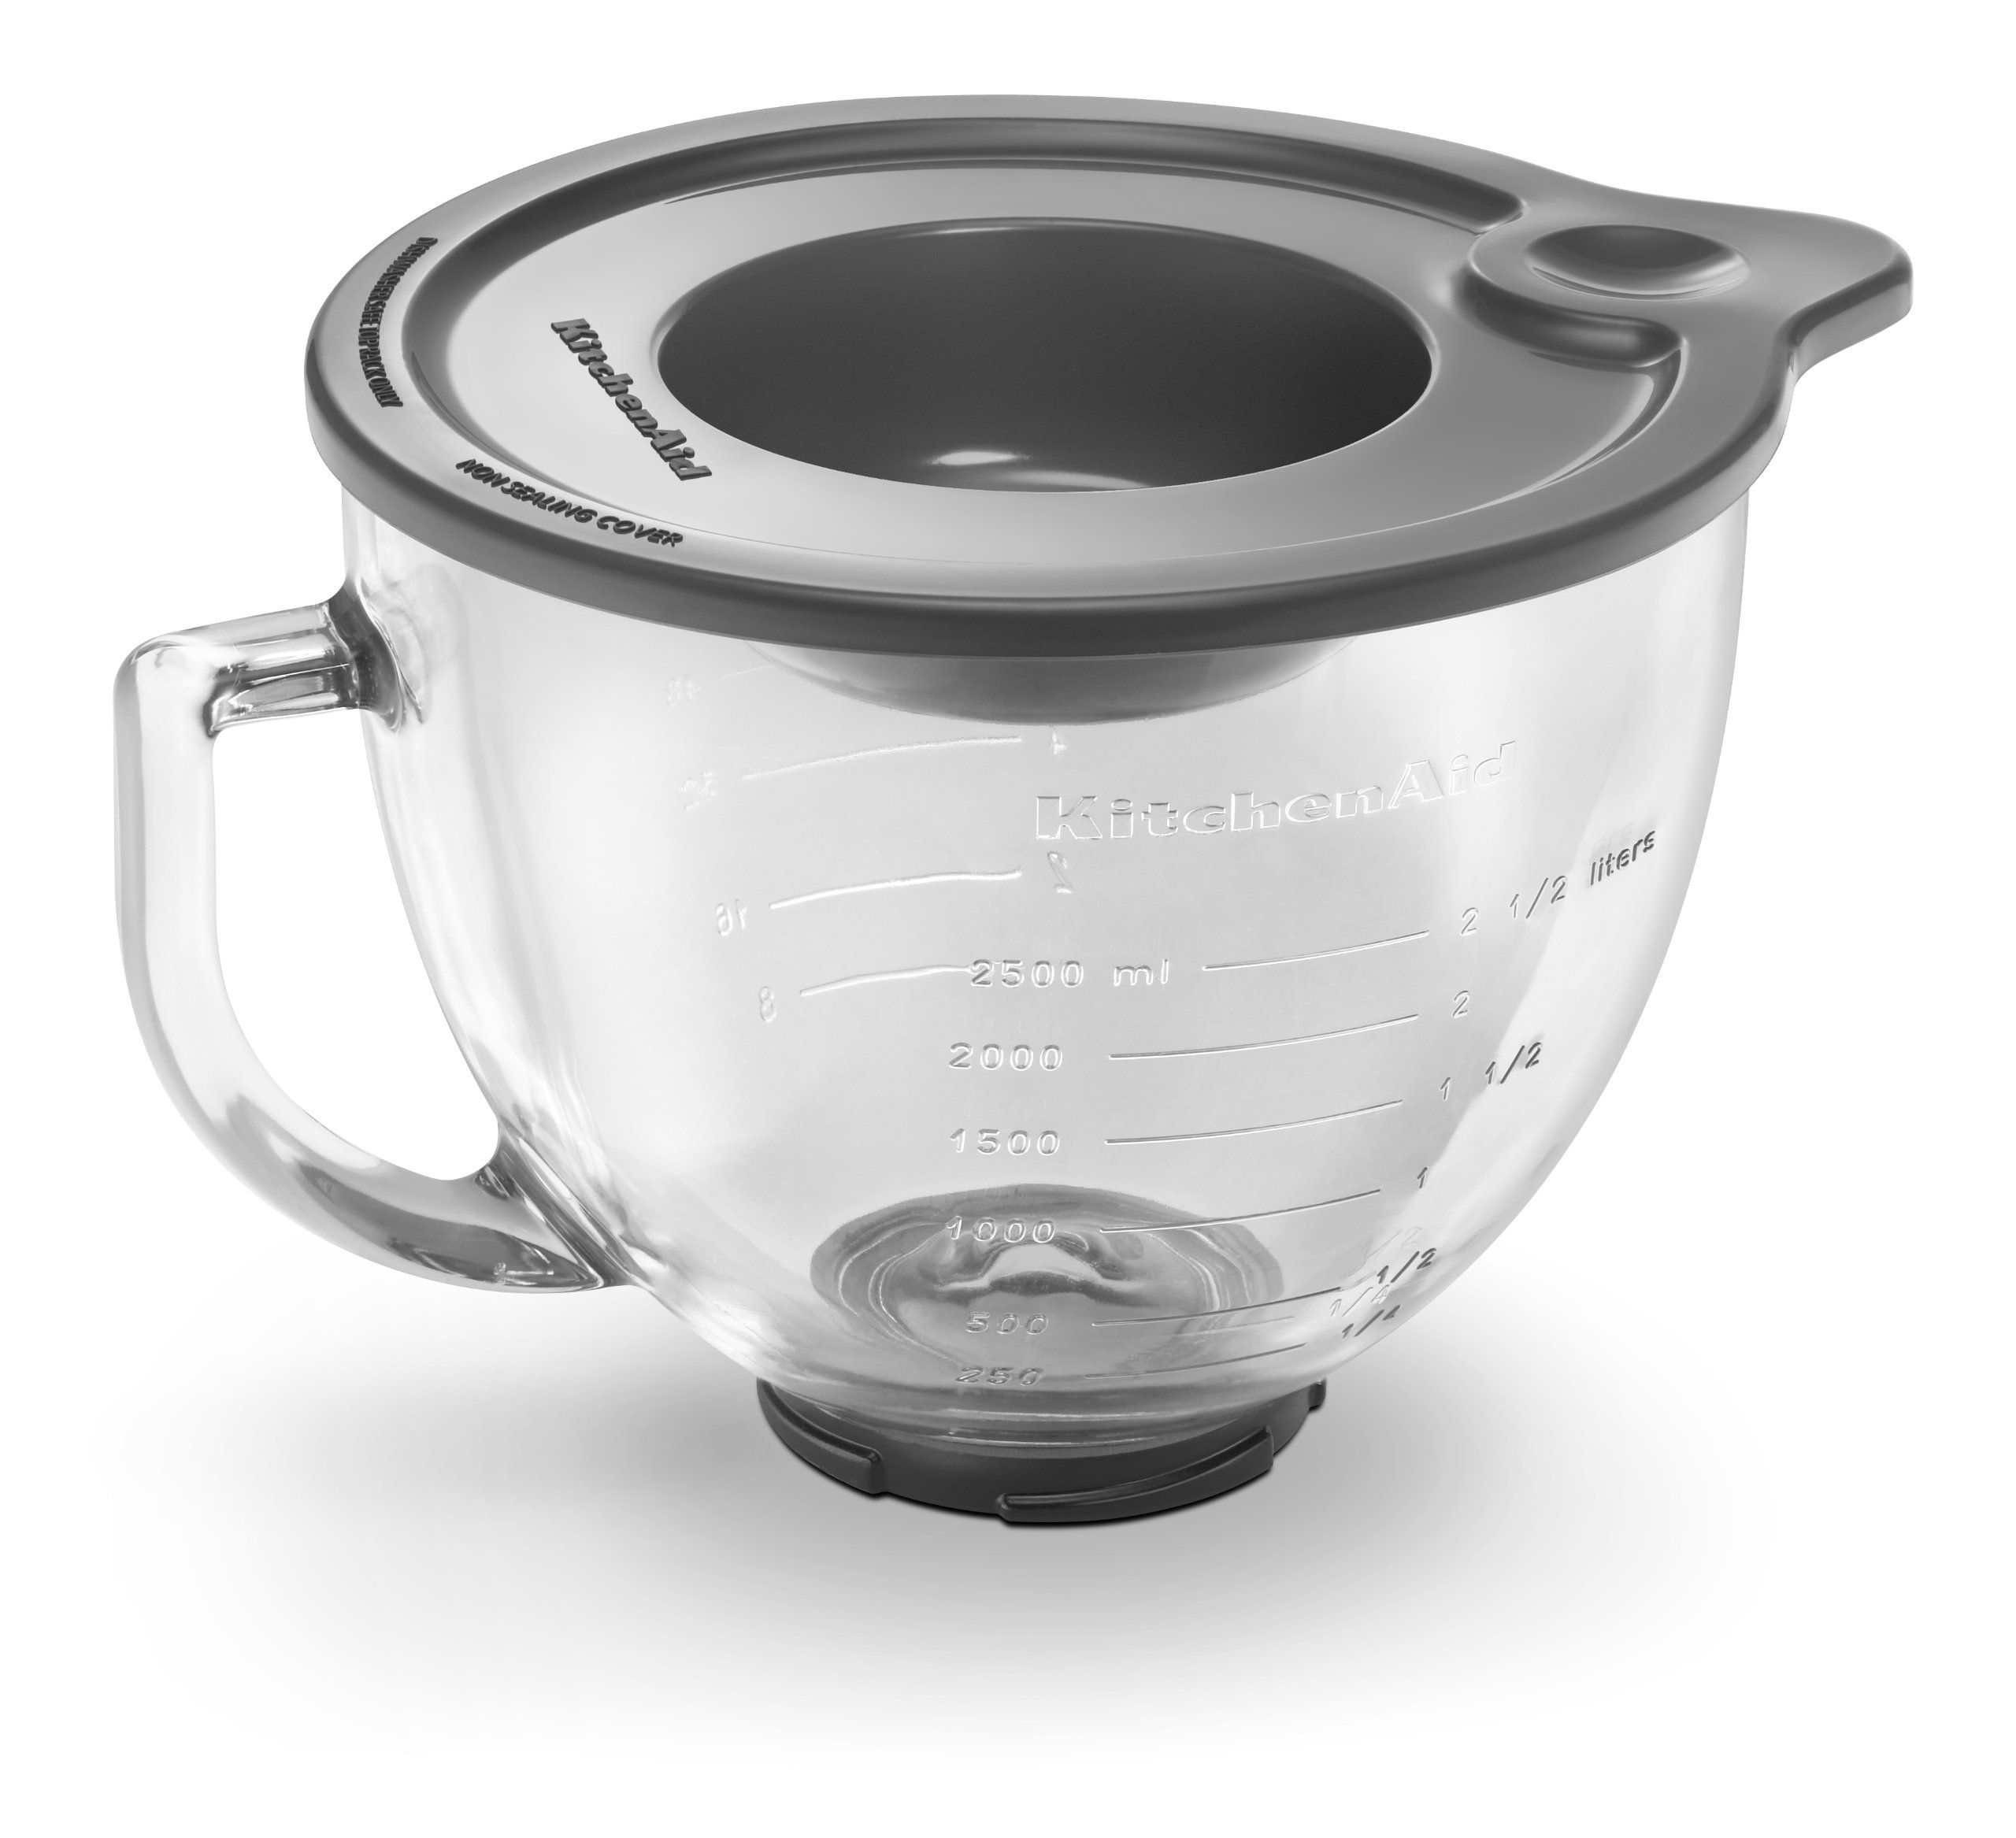 KitchenAid 5-Quart Glass Bowl - Would be fun for Ella to watch me cook with